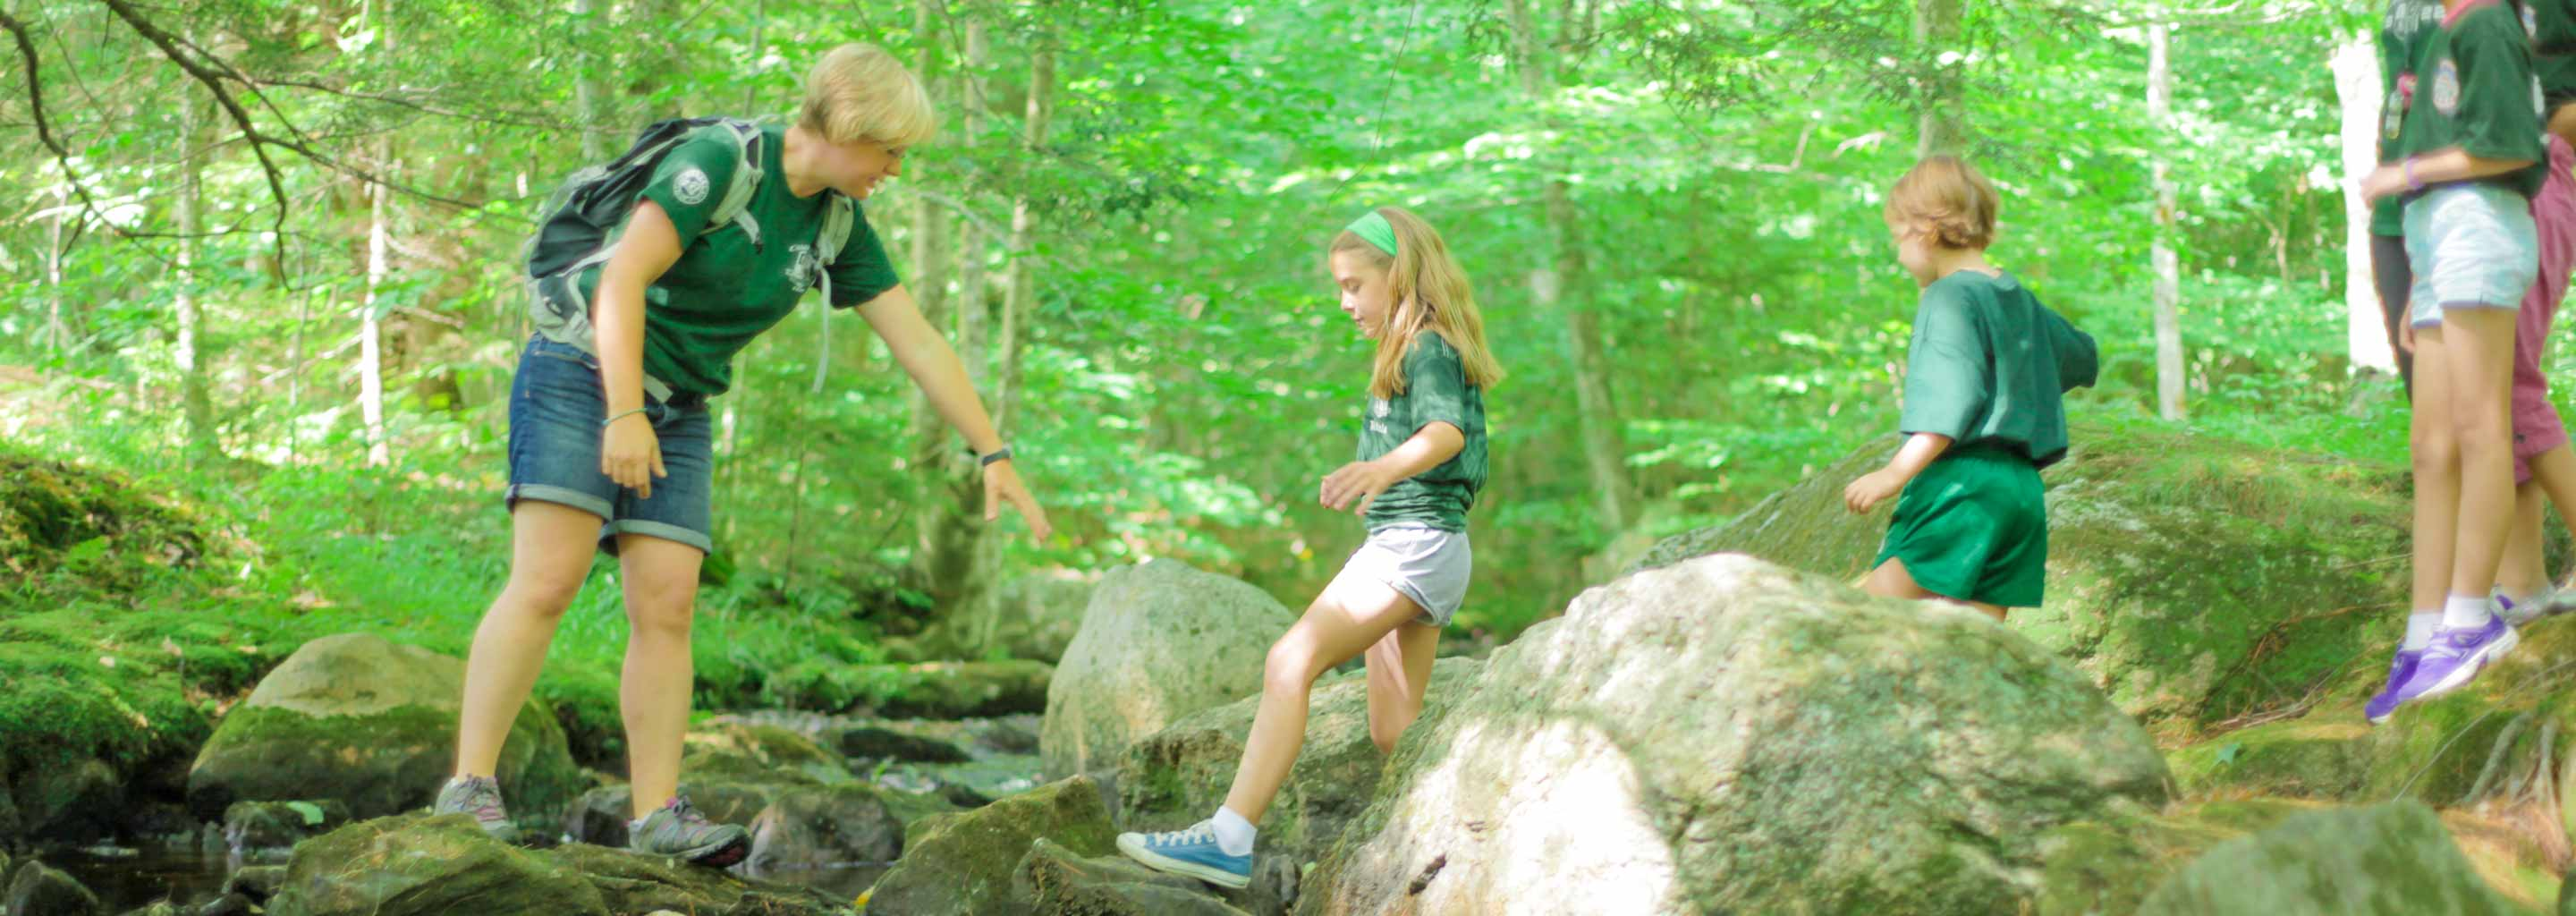 Counselor leads girl at camp